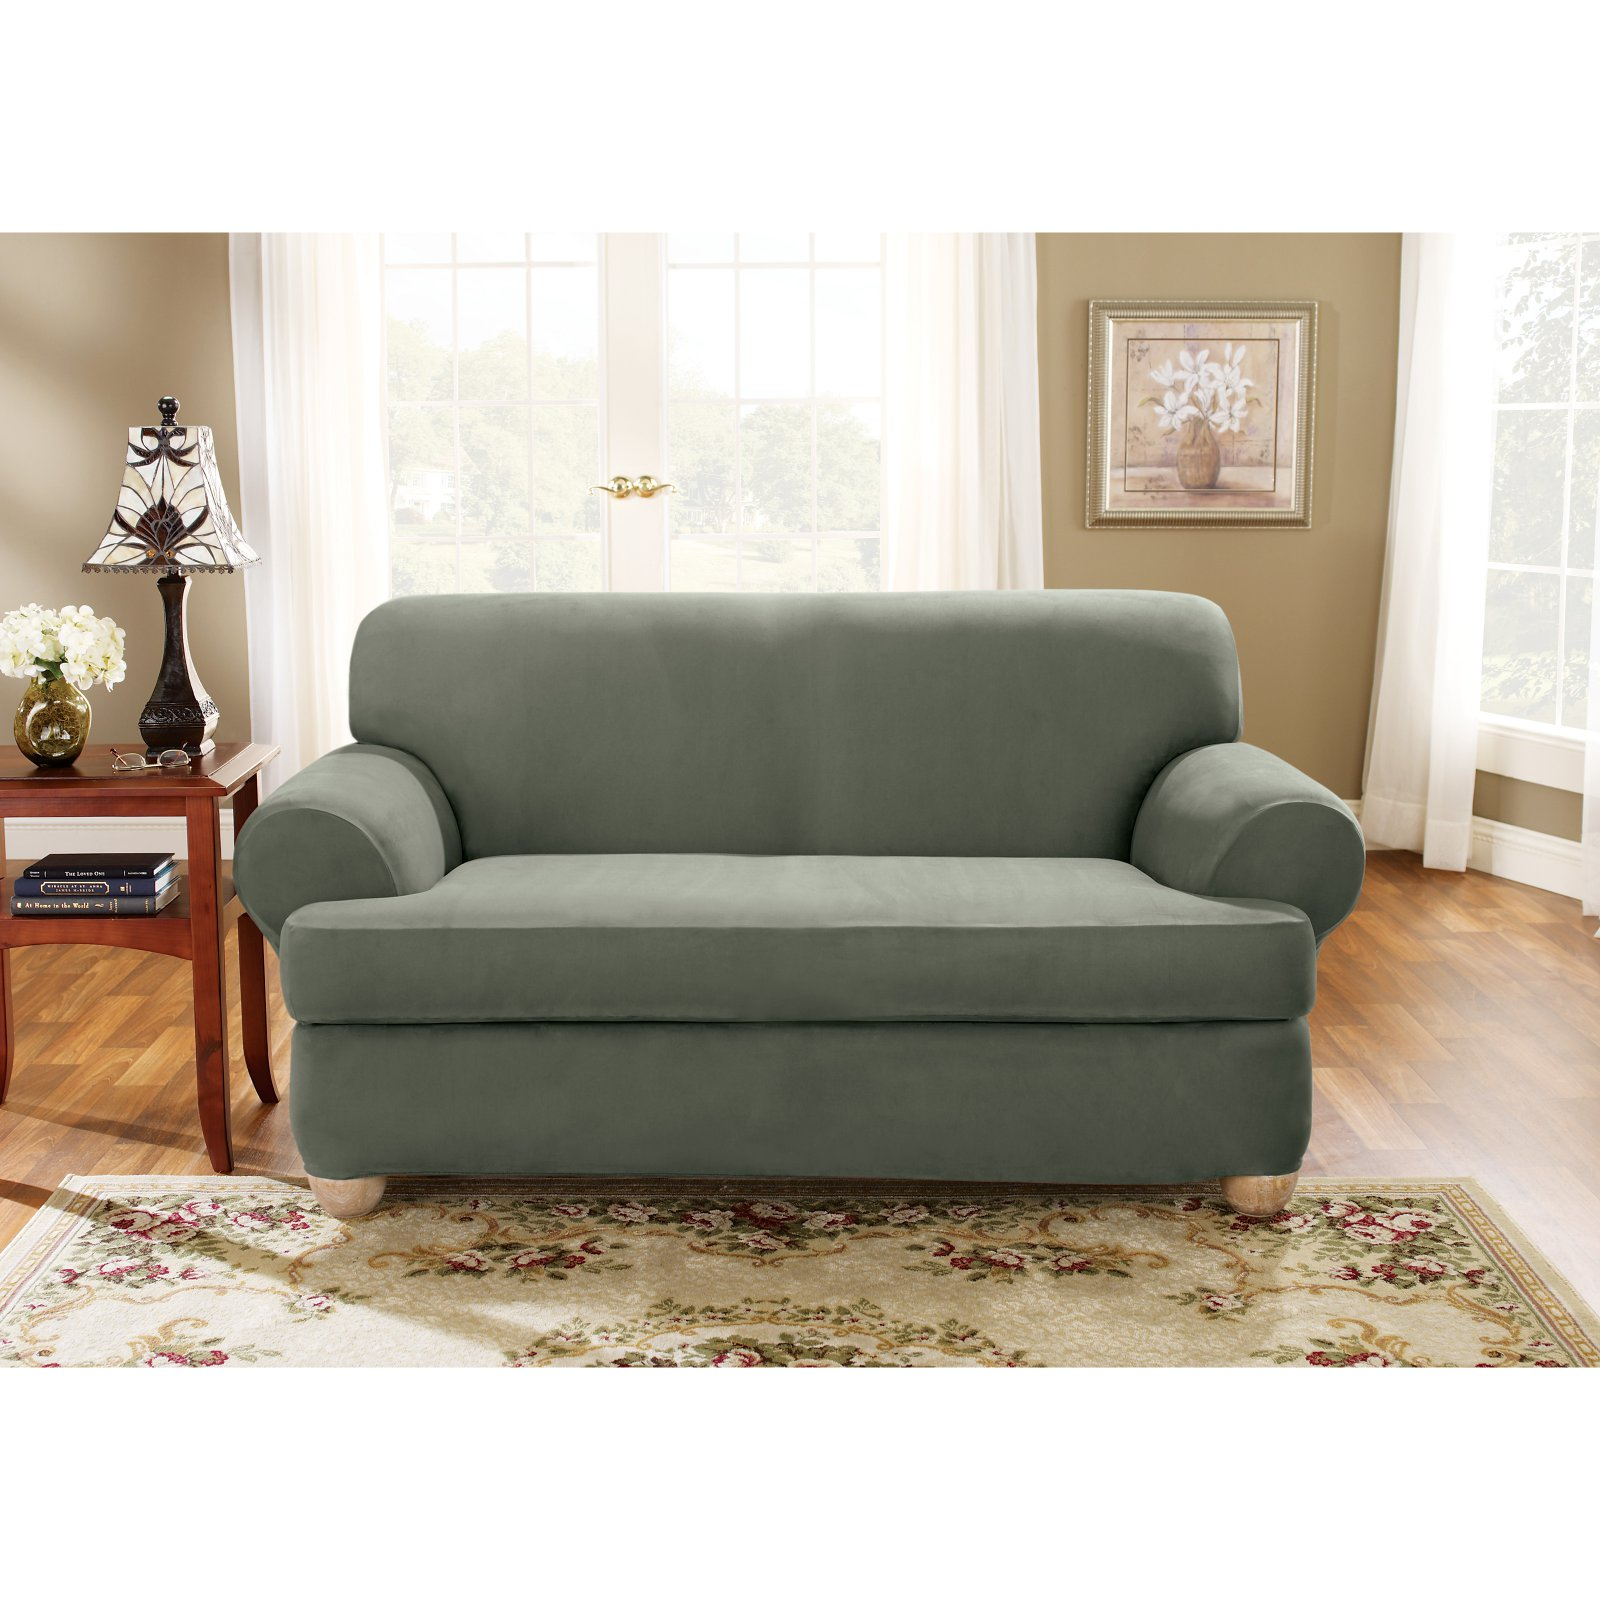 Sure Fit Stretch Suede 2-Piece T-cushion Sofa Slipcover